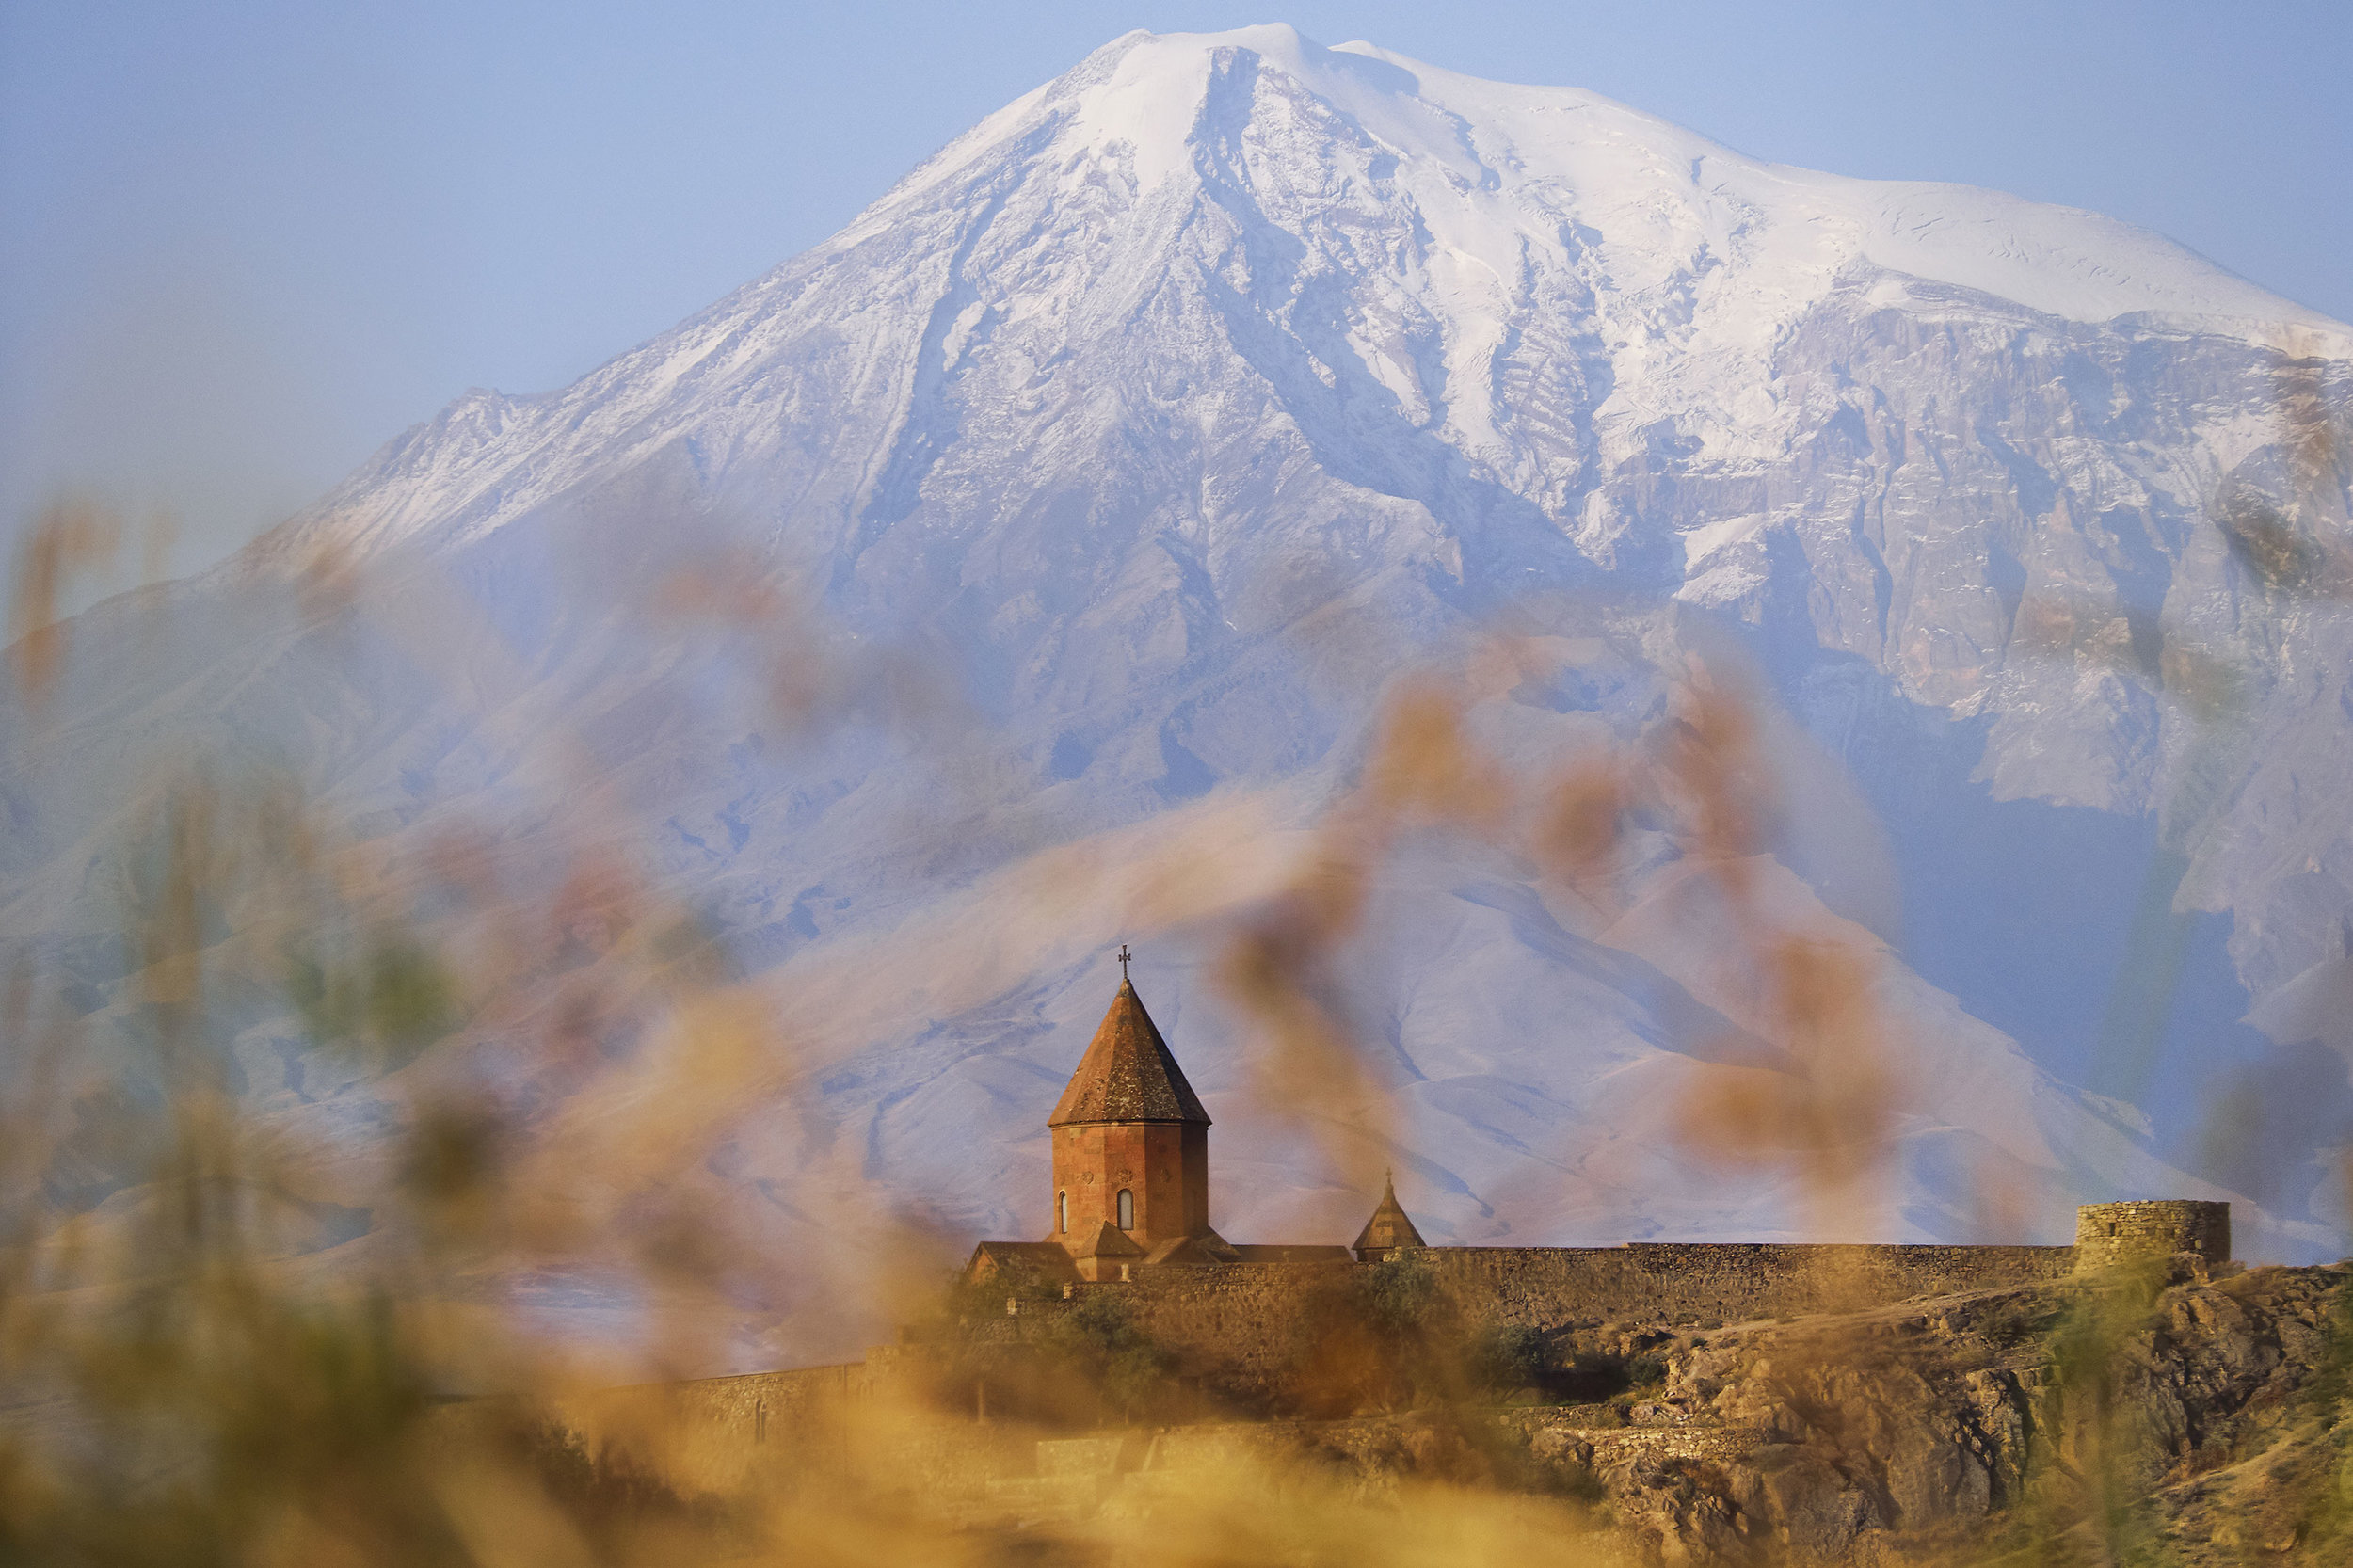 Khor-Virap-and-Mount-Ararat-in-the-back